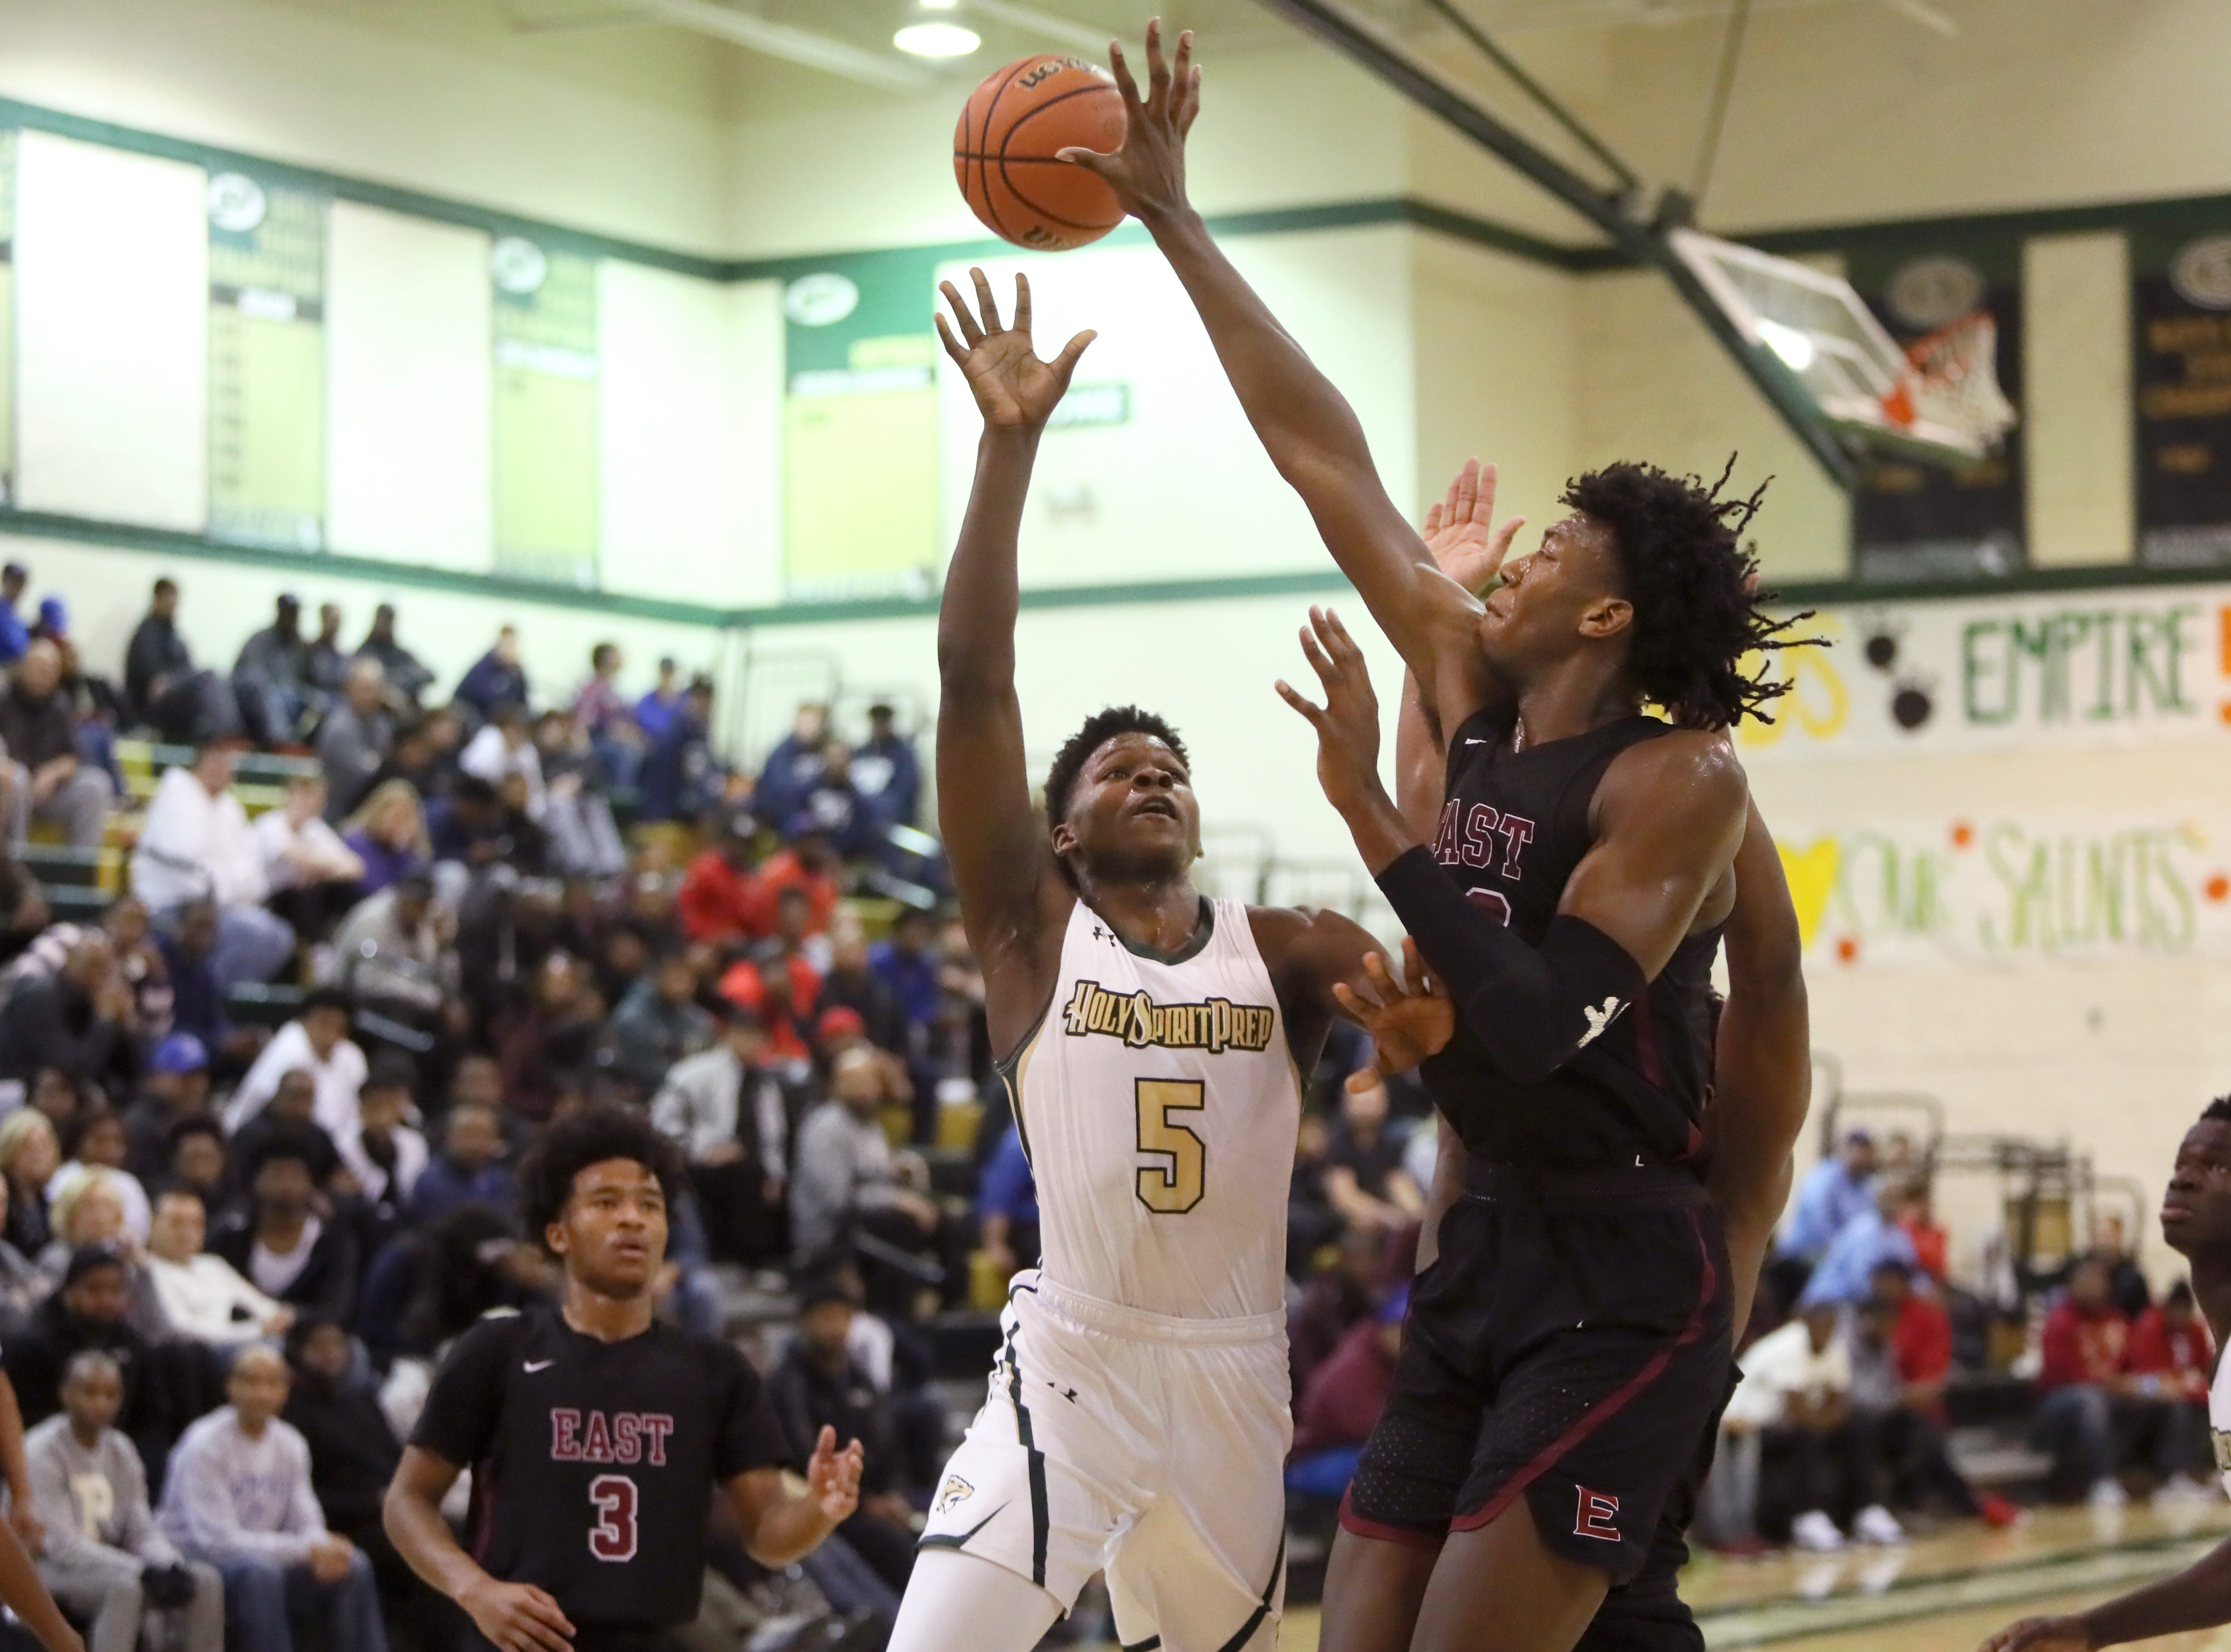 Memphis East's James Wiseman blocks a shot by Holy Spirit's Anthony Edwards during the Memphis Hoopfest at Briarcrest Christian School on Friday, Jan. 4, 2019.